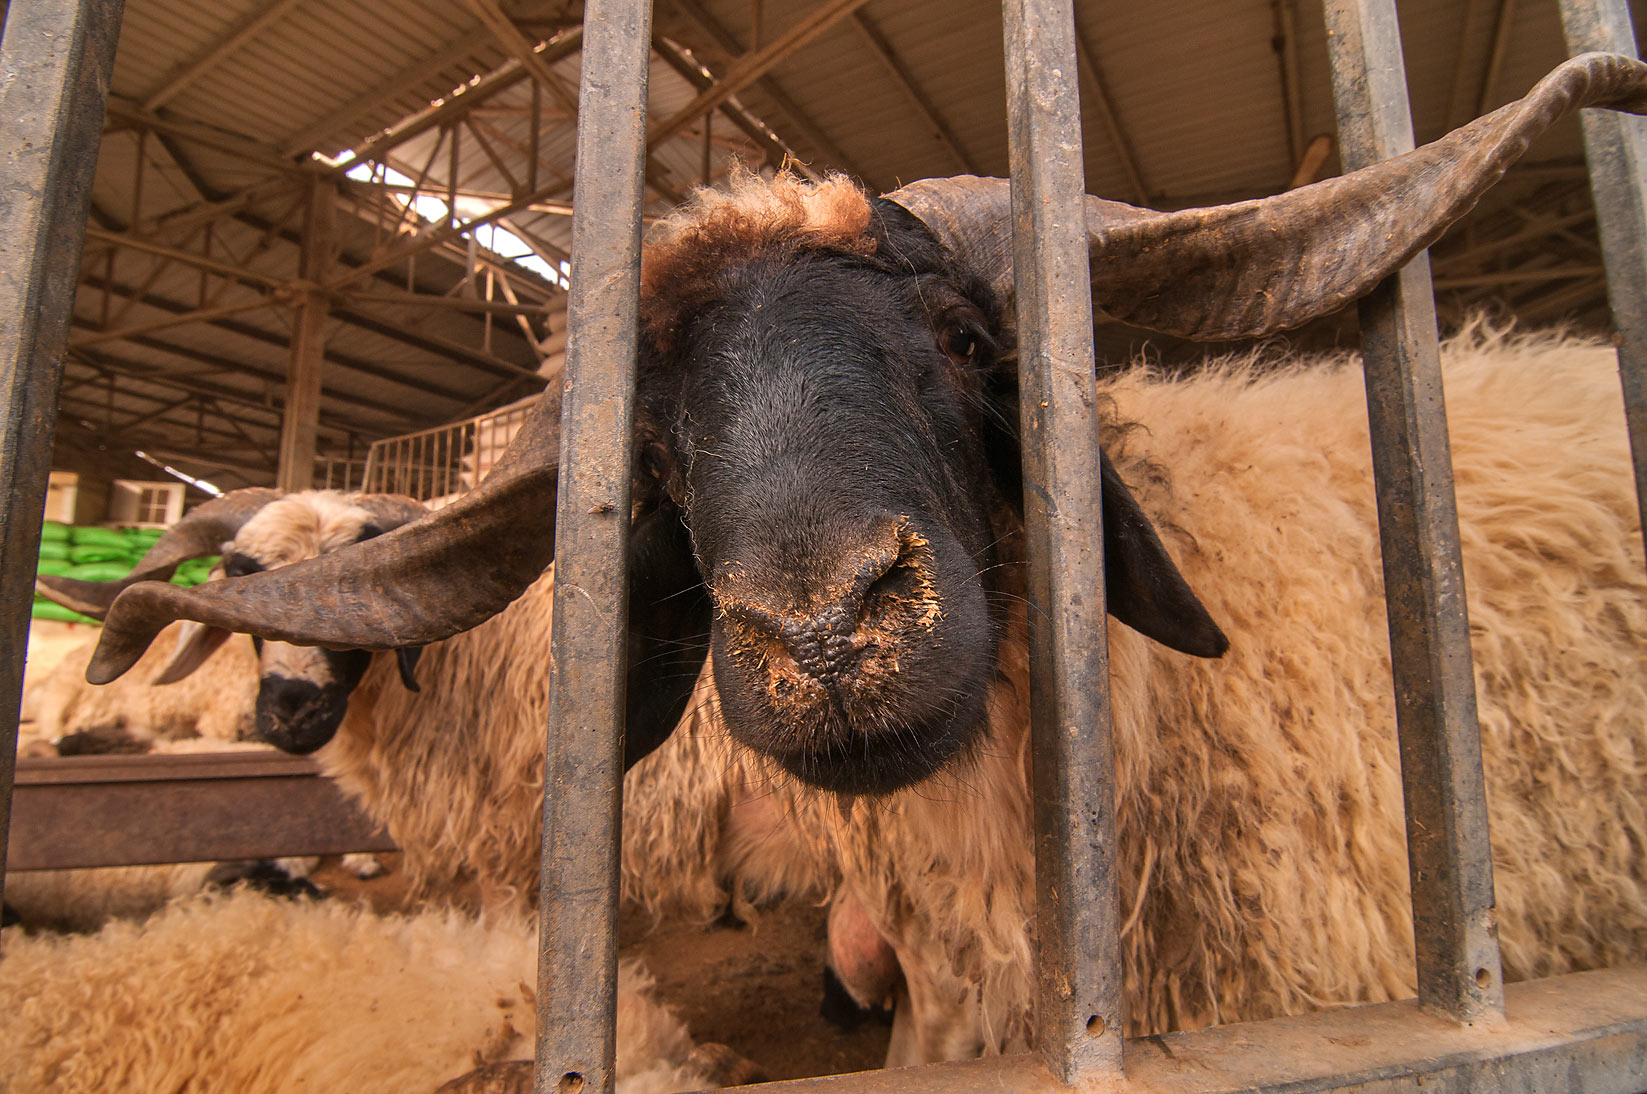 Ram's head in Livestock Market, Wholesale Markets area. Doha, Qatar